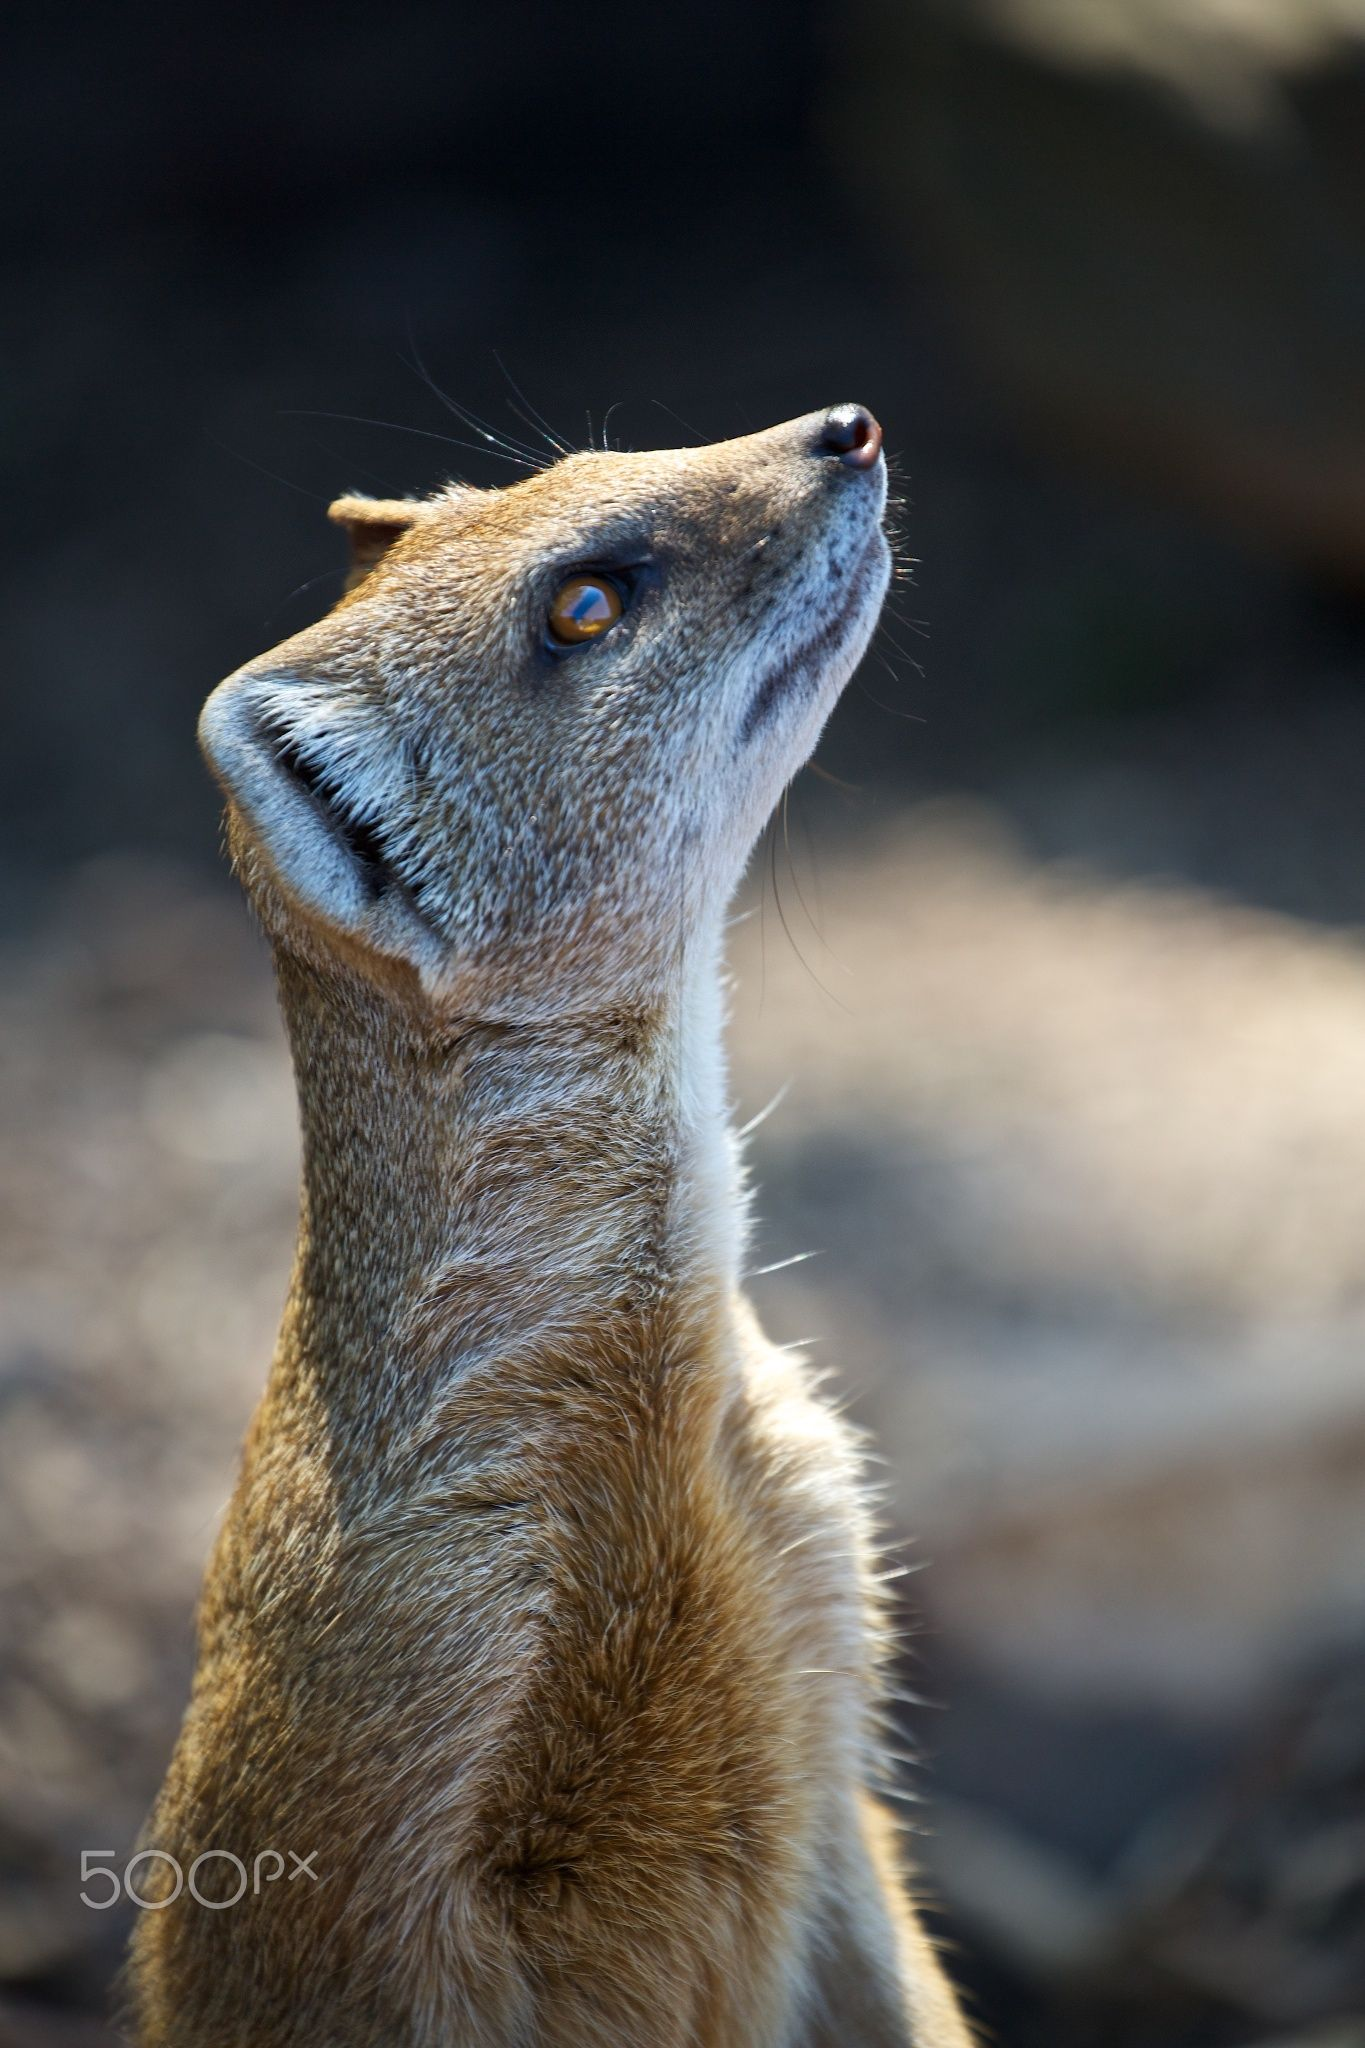 Mongoose watching, guess what is coming? by Christophe